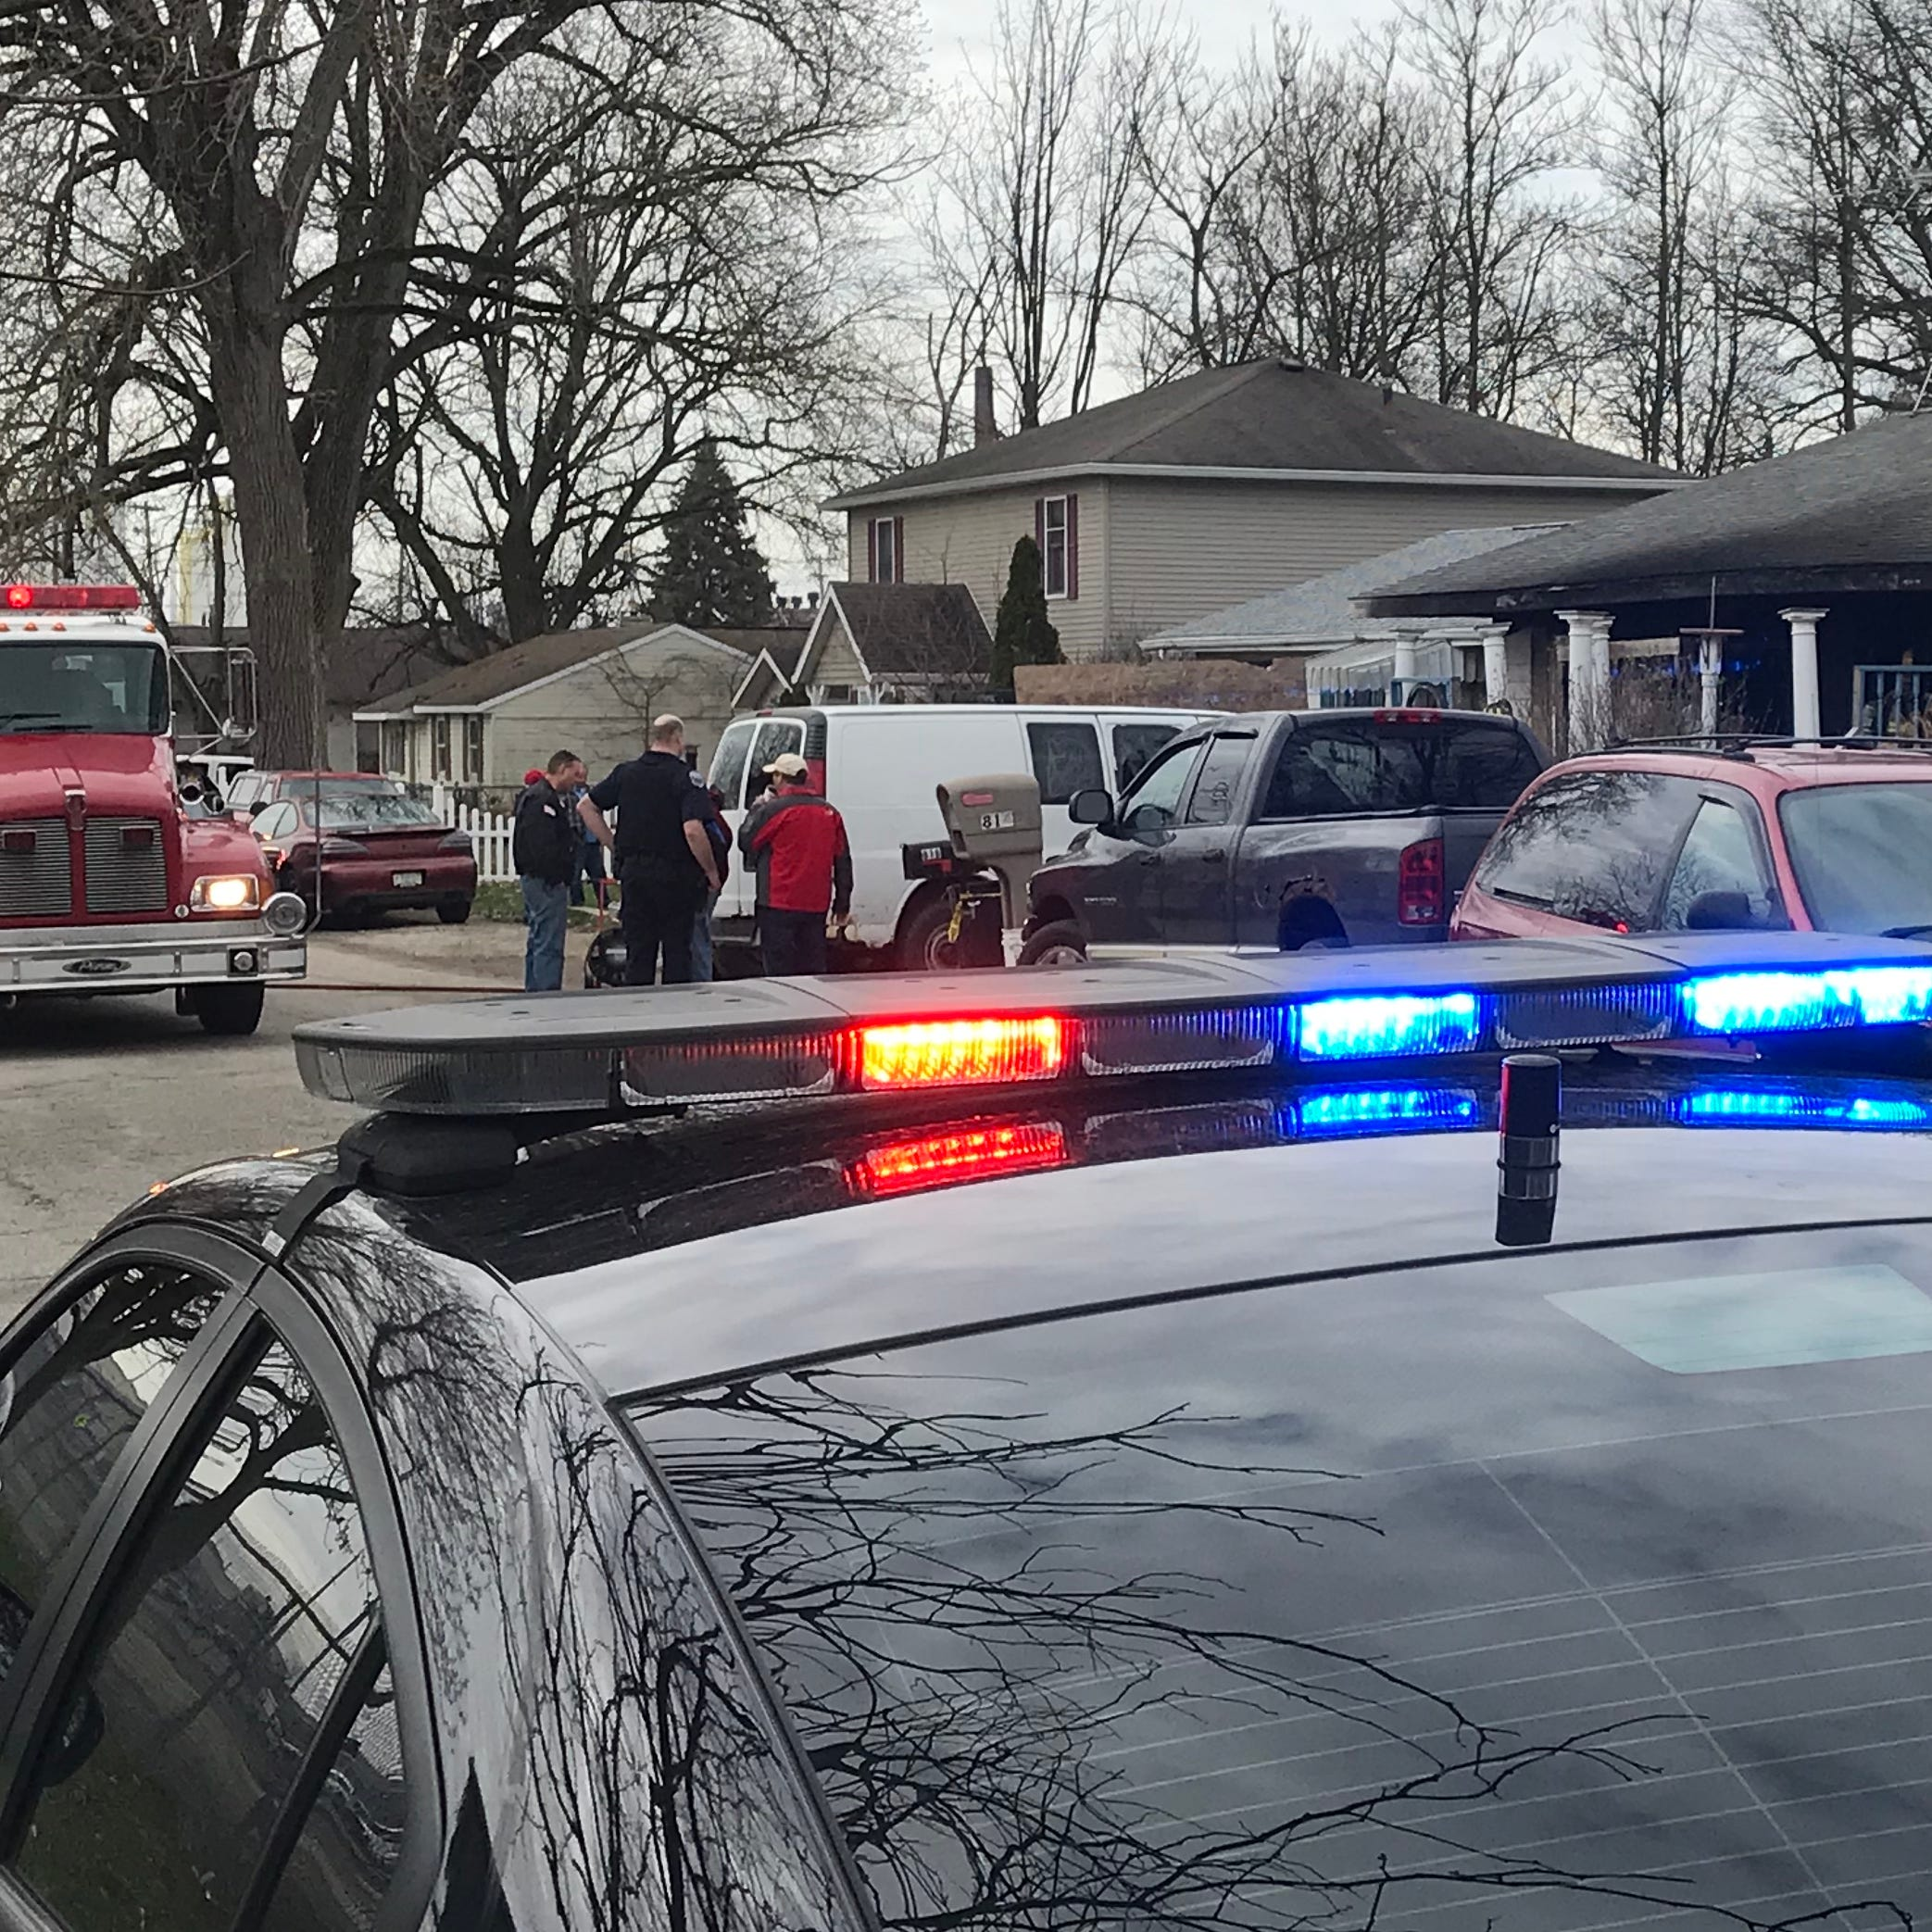 One dead after report of stabbing, early morning house fire in Lafayette